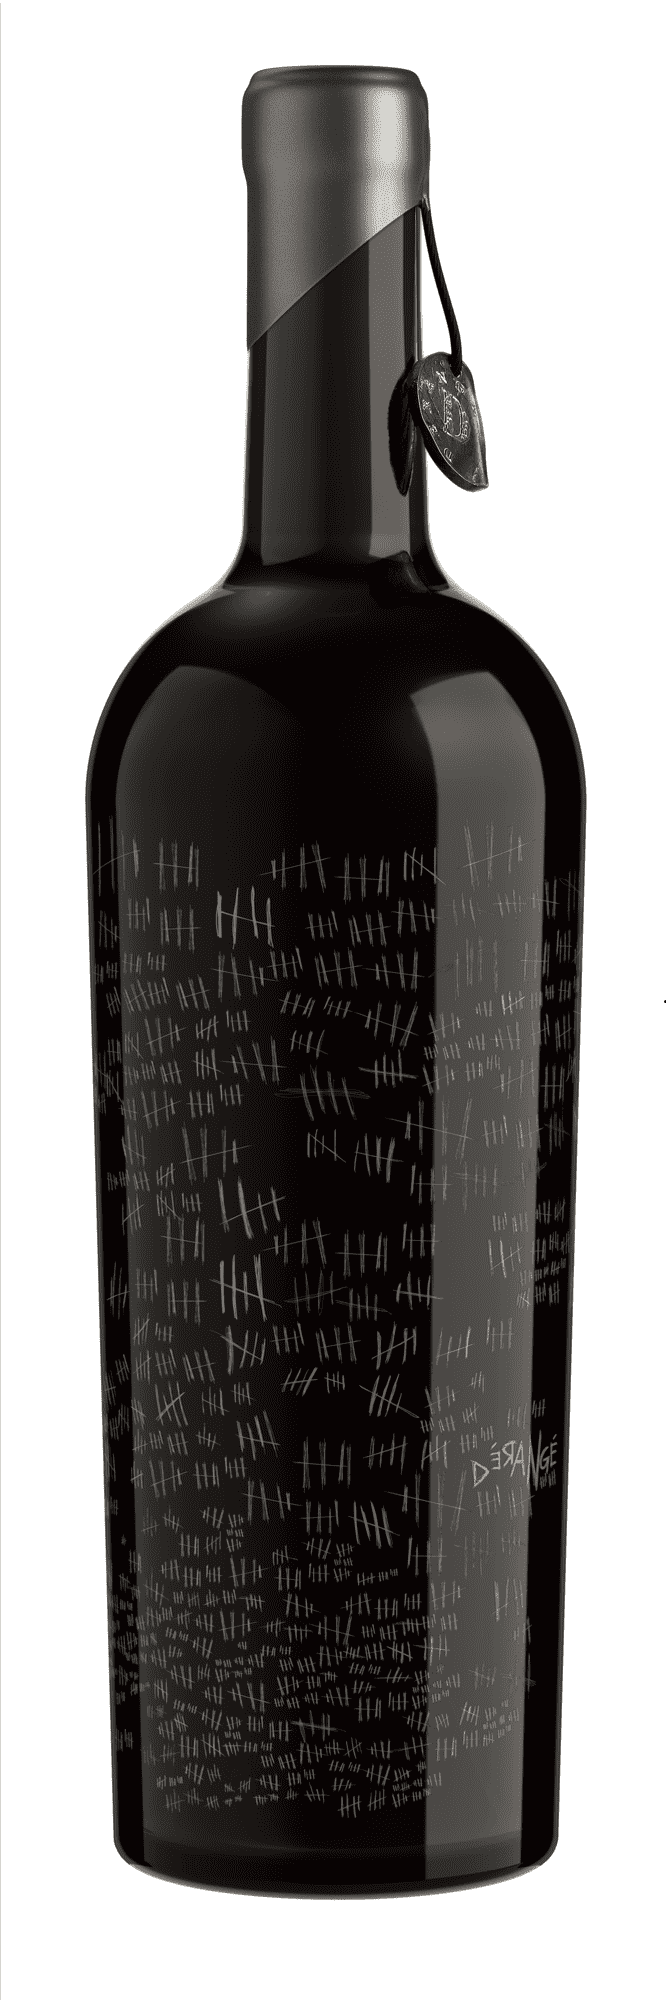 The Prisoner Wine Company Derange 2016 (750 ml) - BuyWinesOnline.com